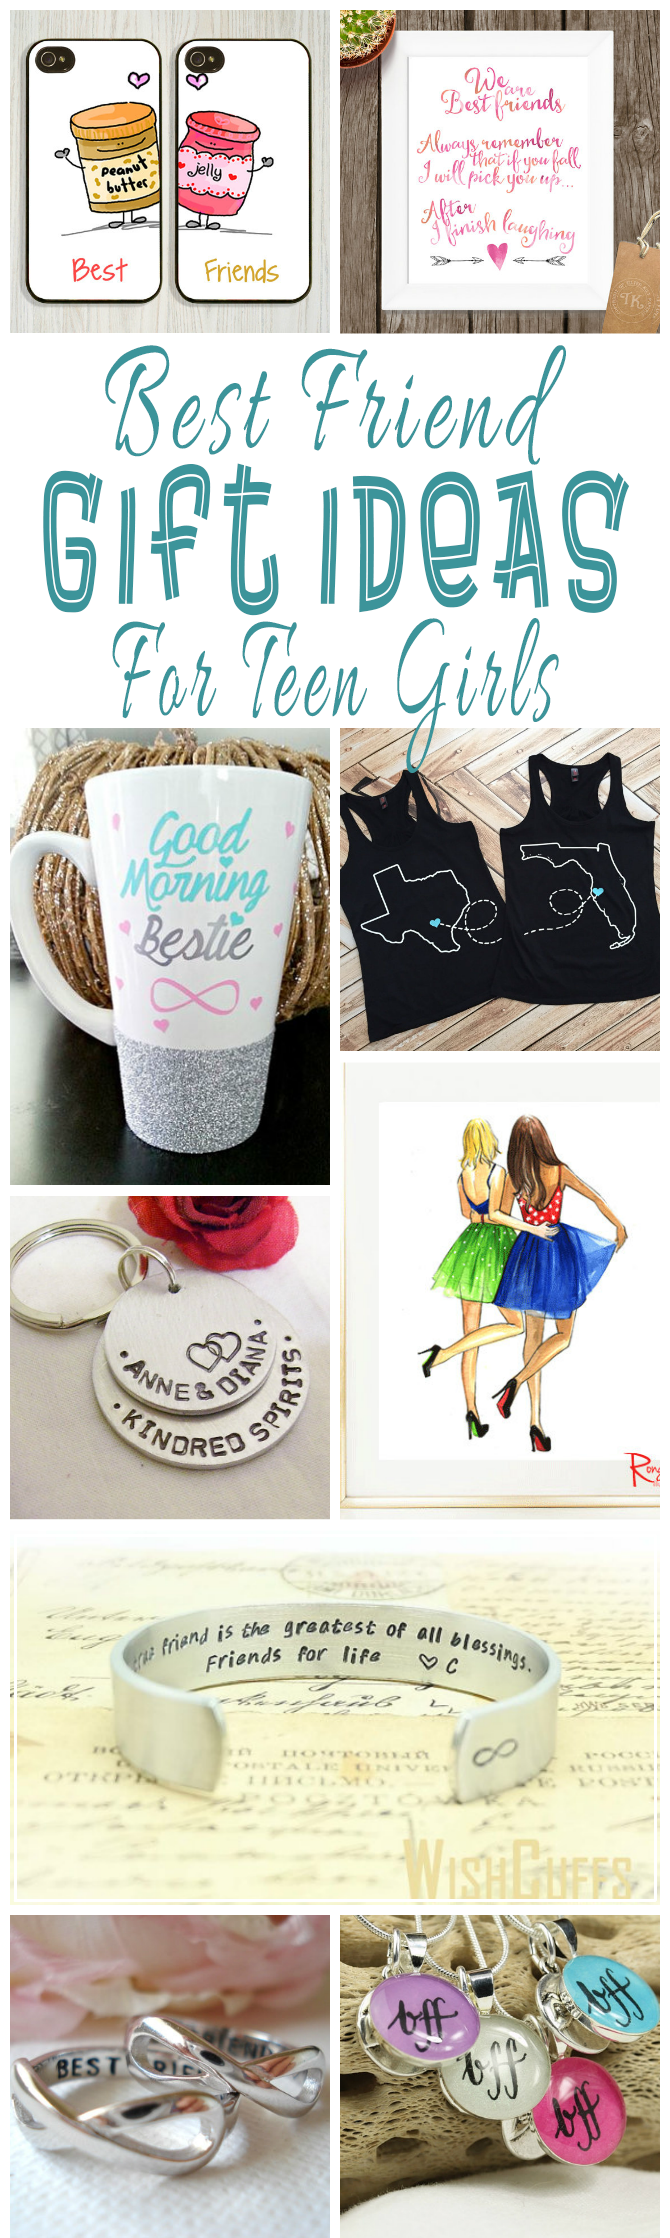 Best Friend Gift Ideas For Teens | Raising Tween And Teen Girls